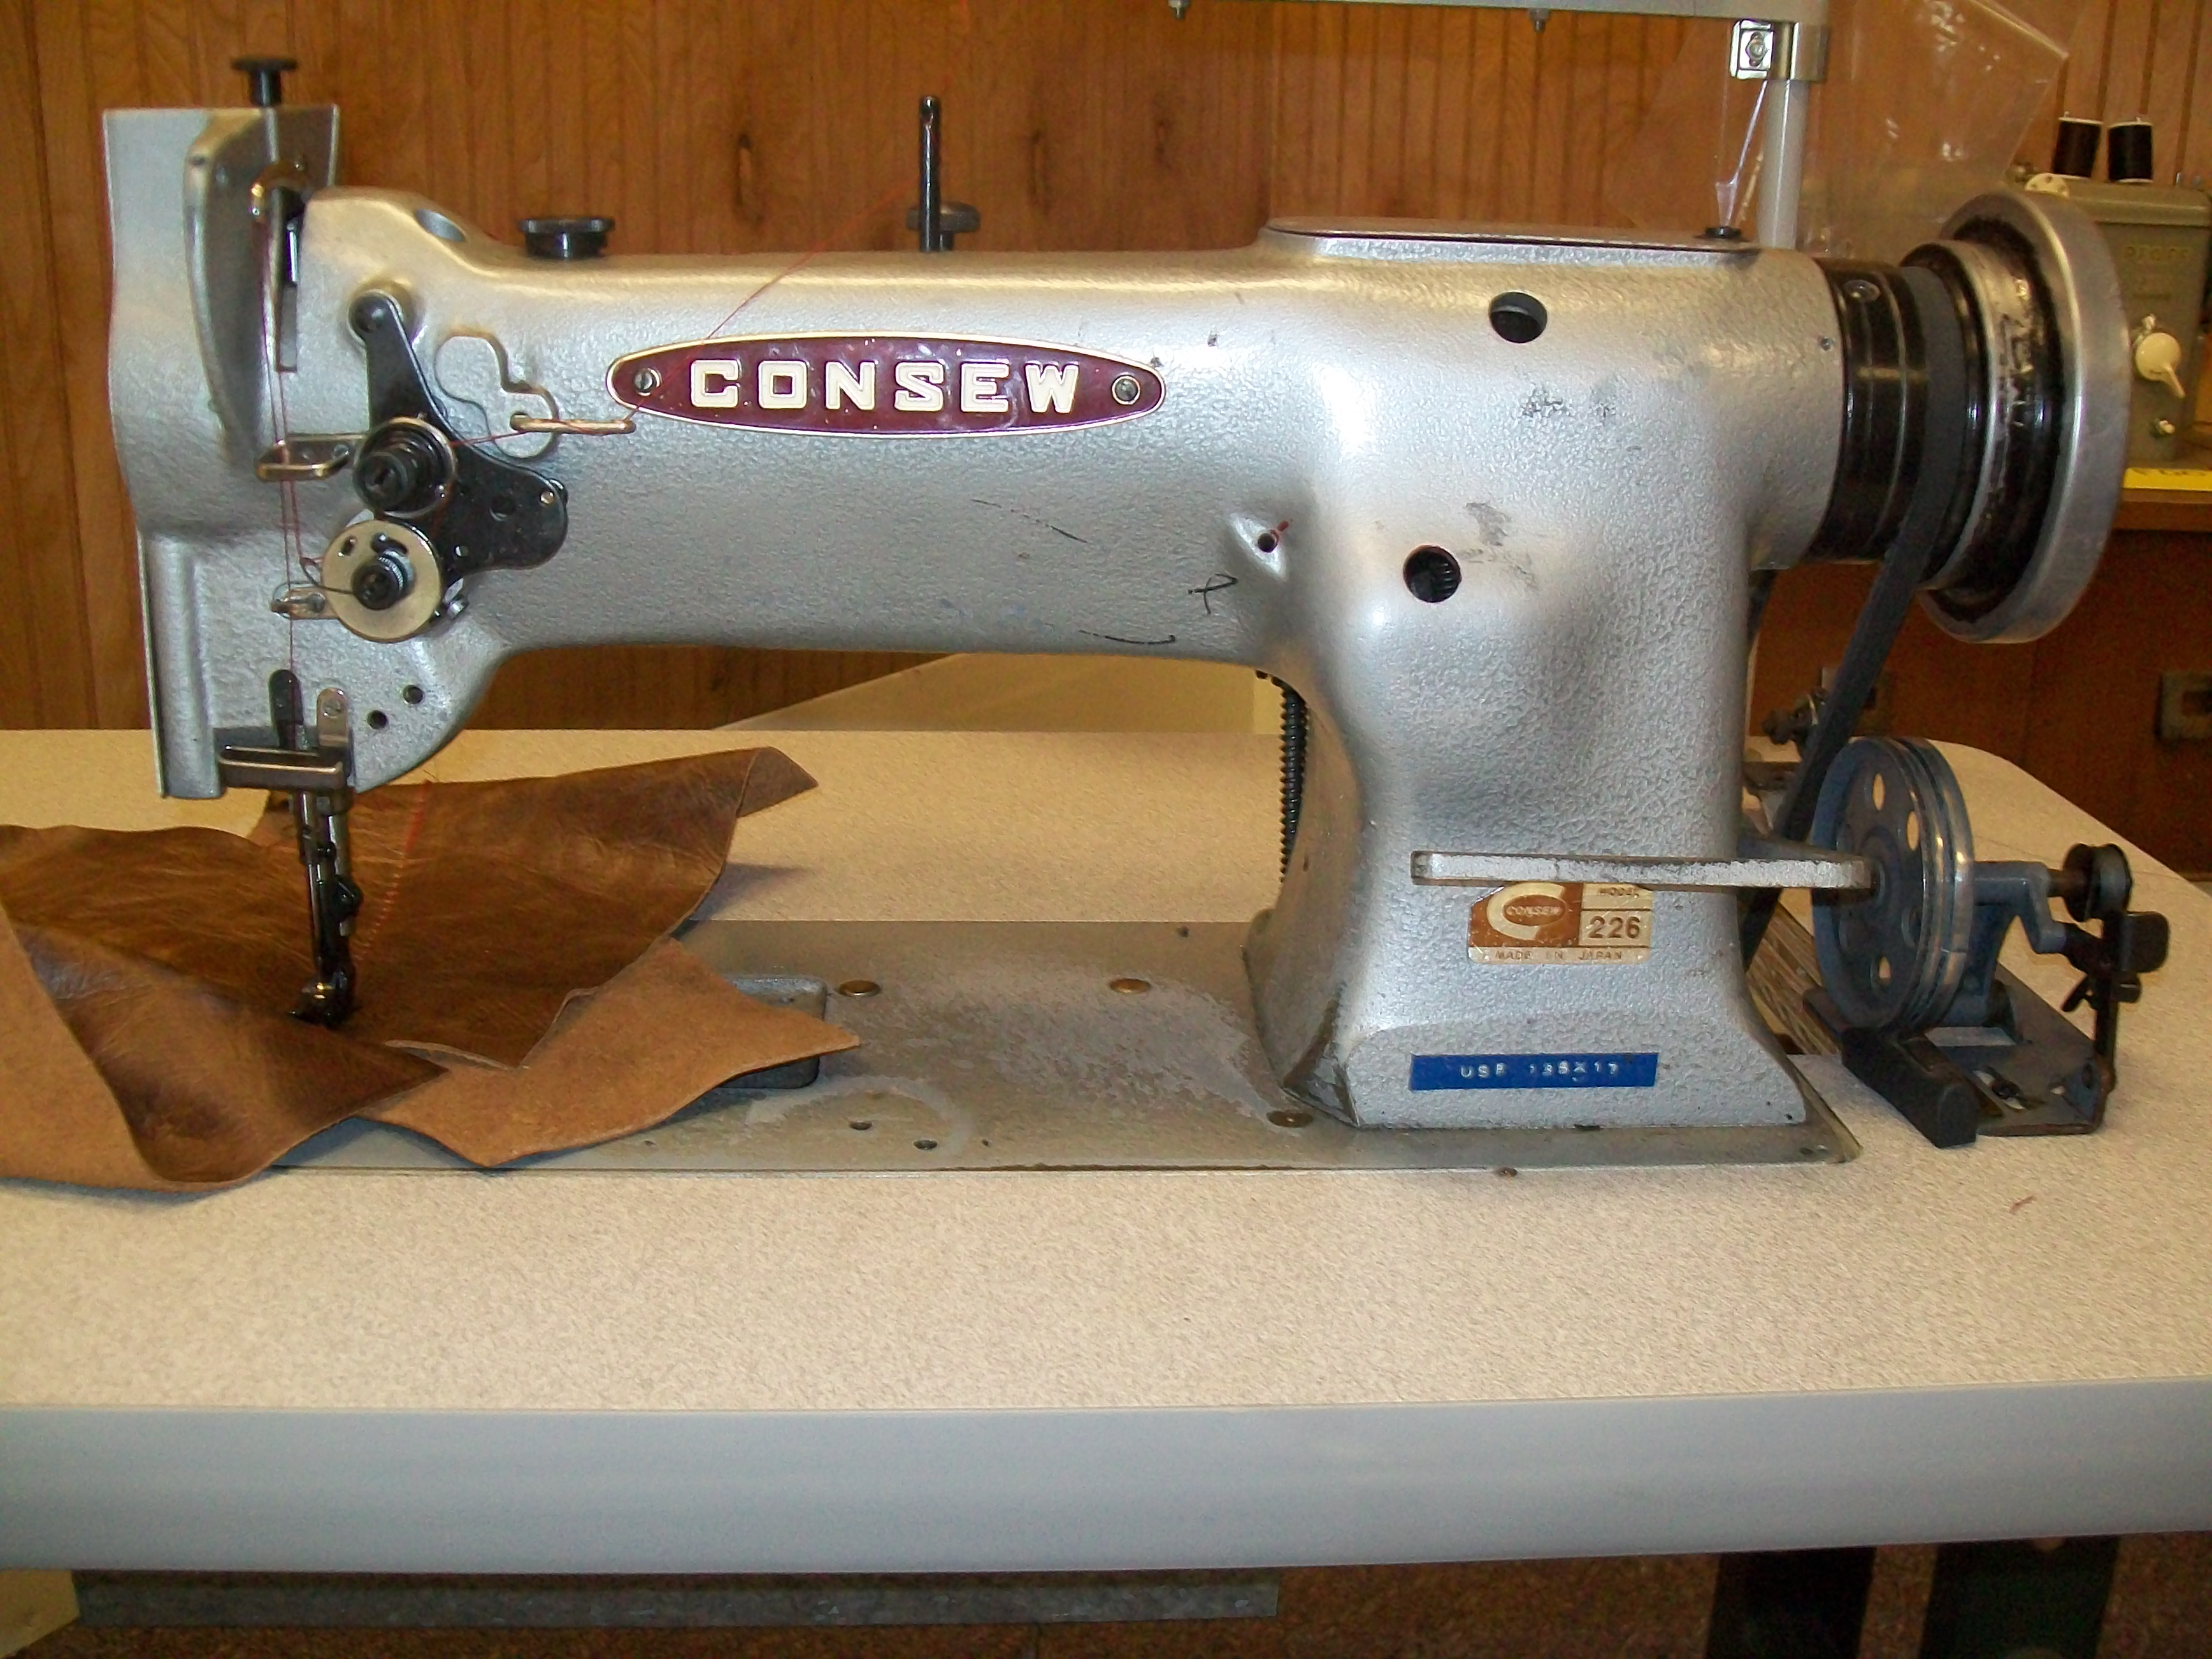 Consew 226 Walking Foot Sewing Machine With Video